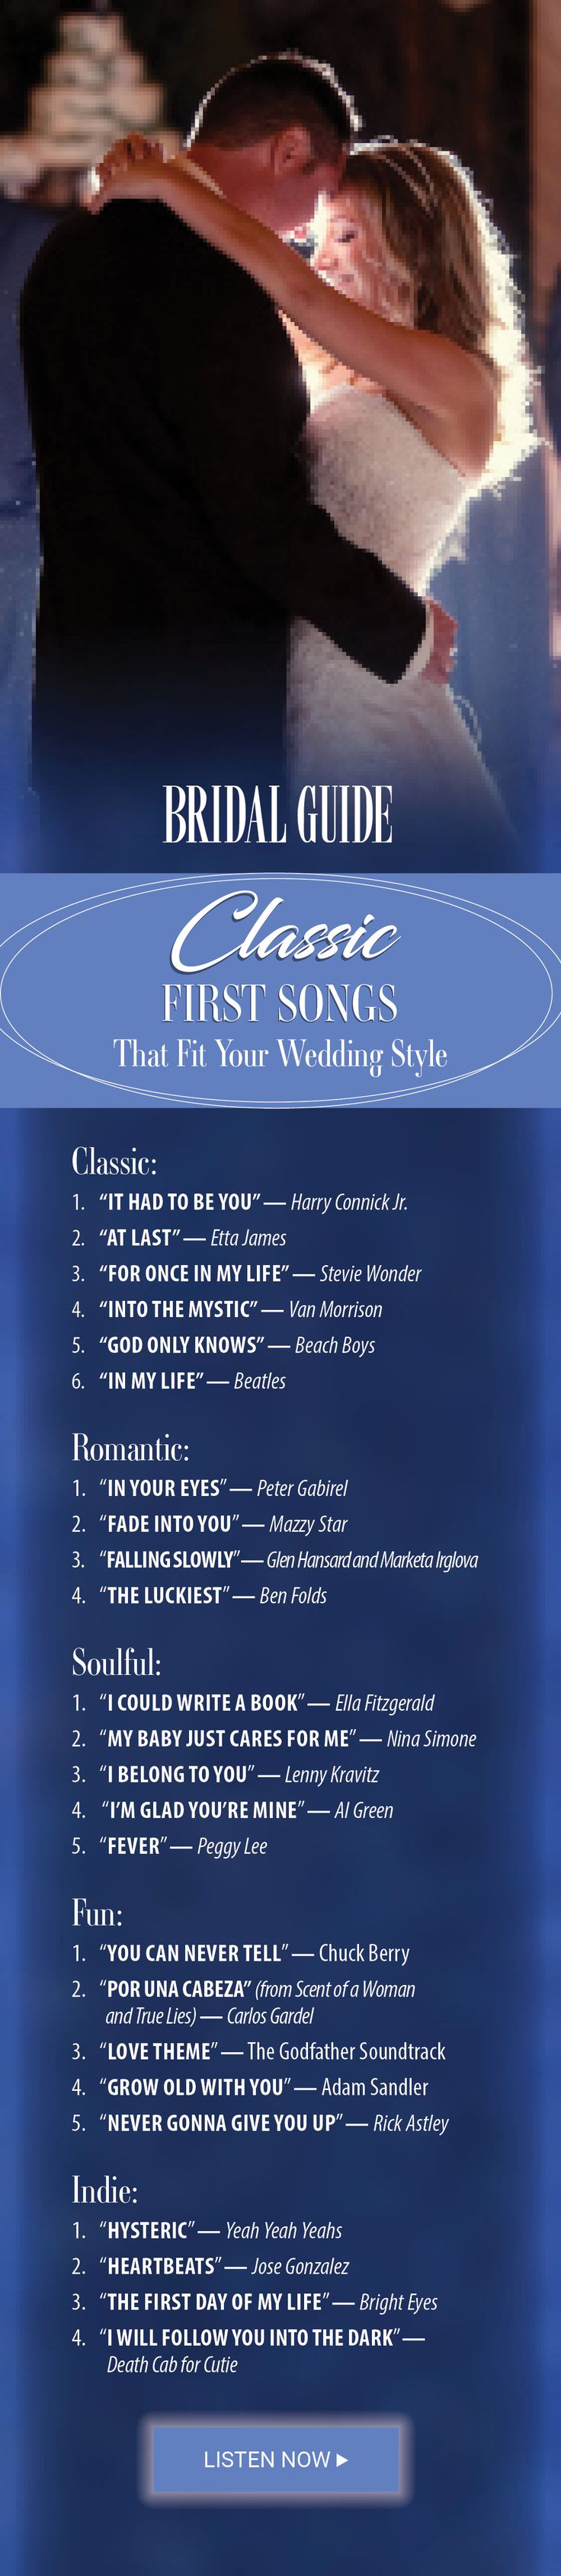 Double wedding soundtrack - Classic First Dance Songs That Fit Your Wedding Style